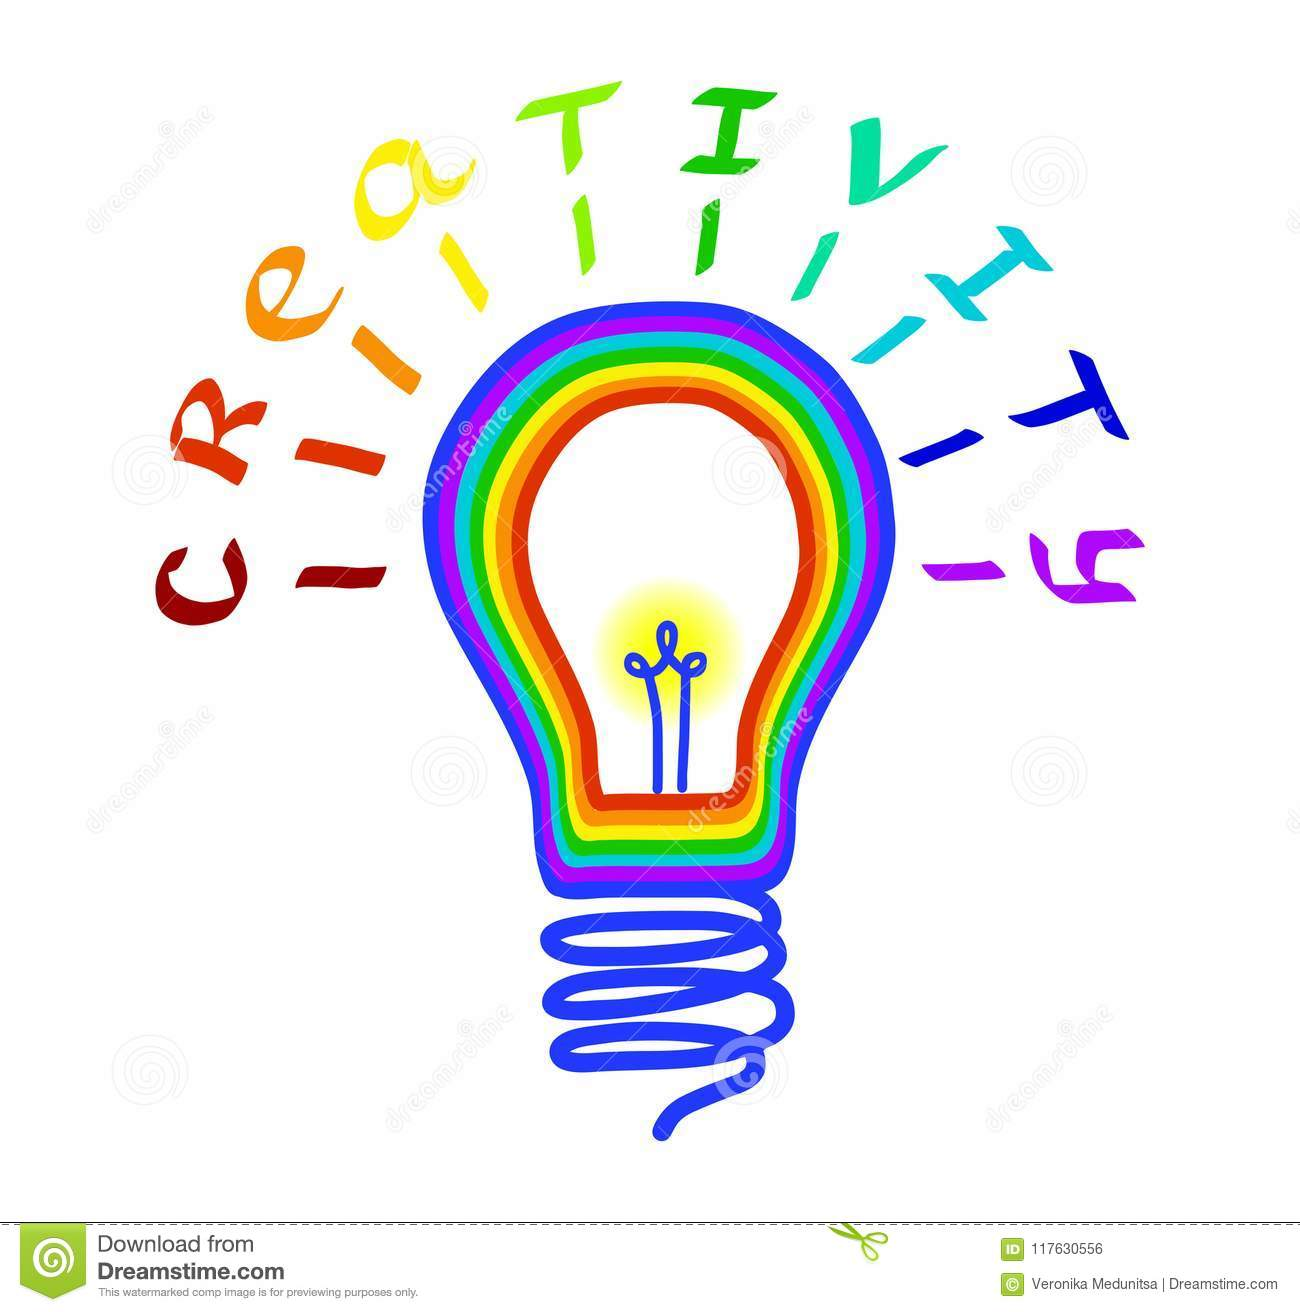 Creativity concept. Light bulb logo with lettering. Concept or creative thinking and unique ideas. Vector illustration.